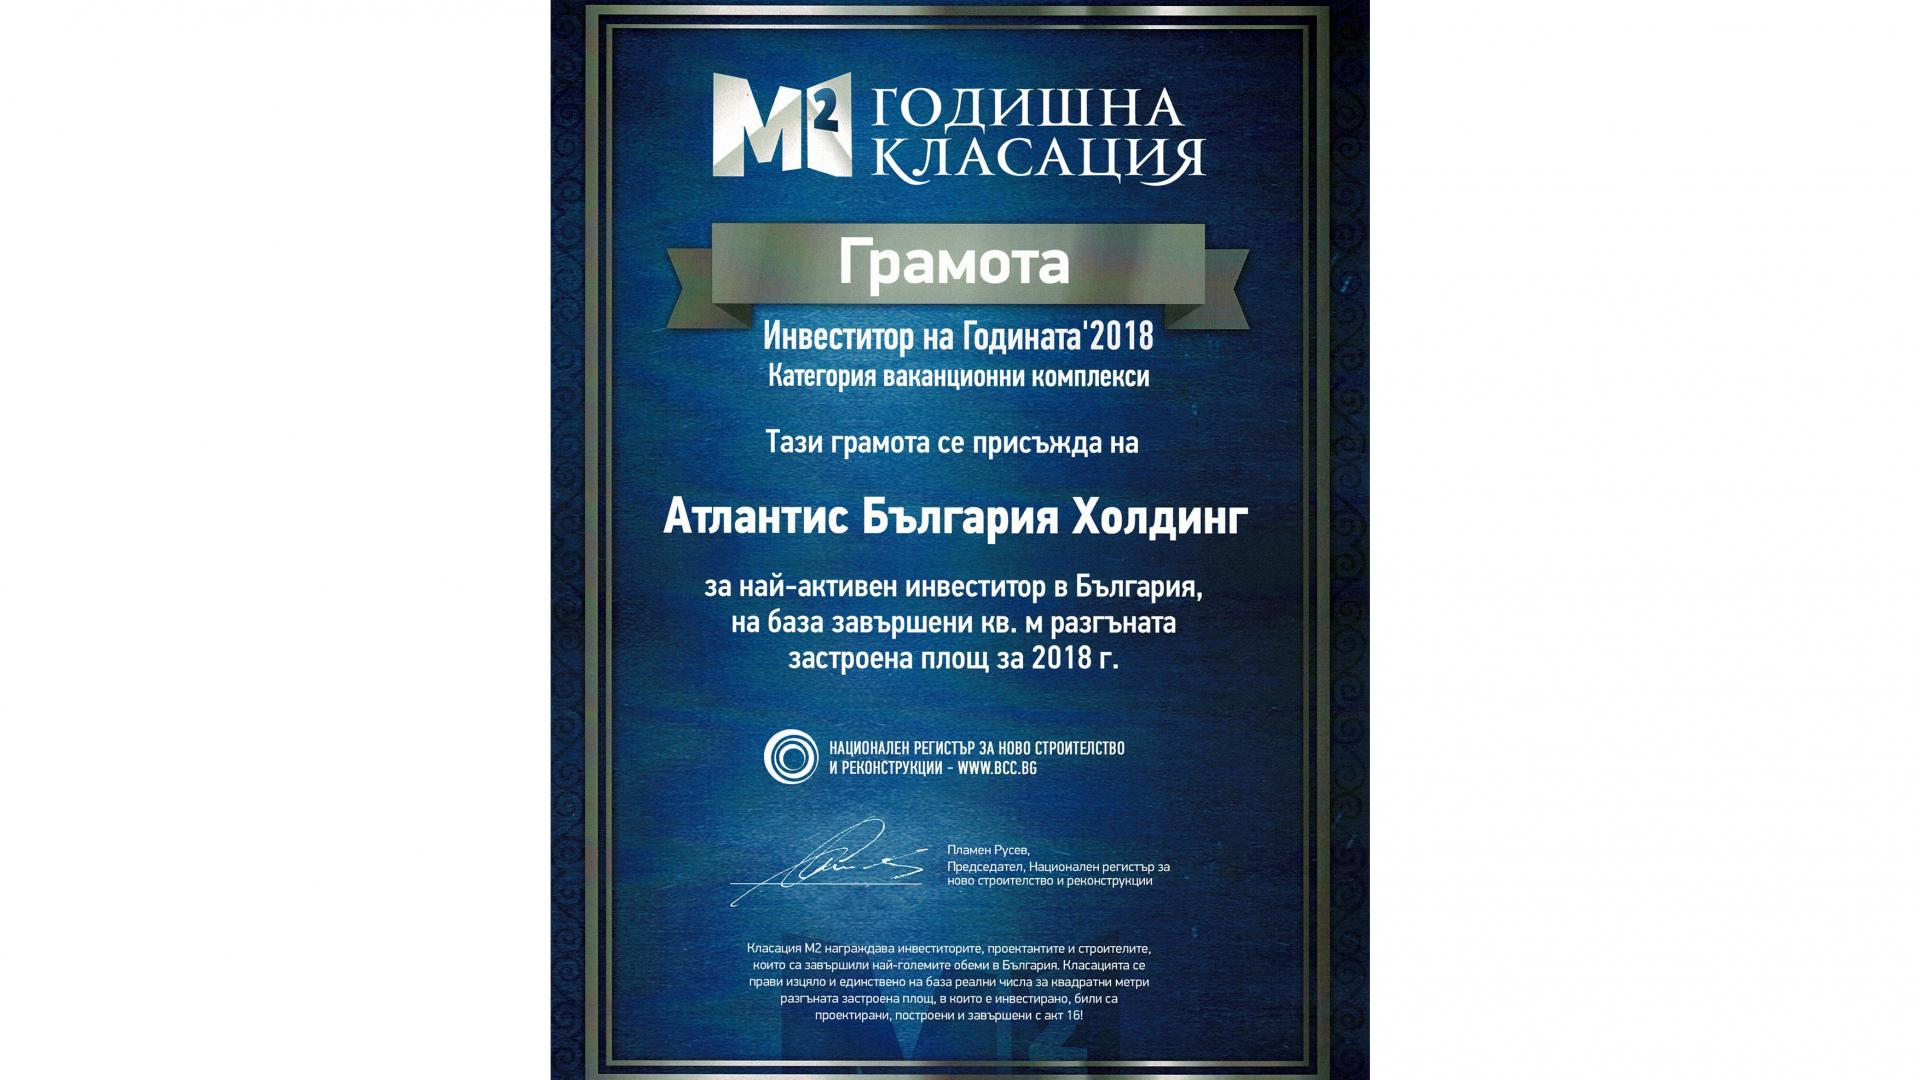 Diploma for Atlantis Bulgaria Holding